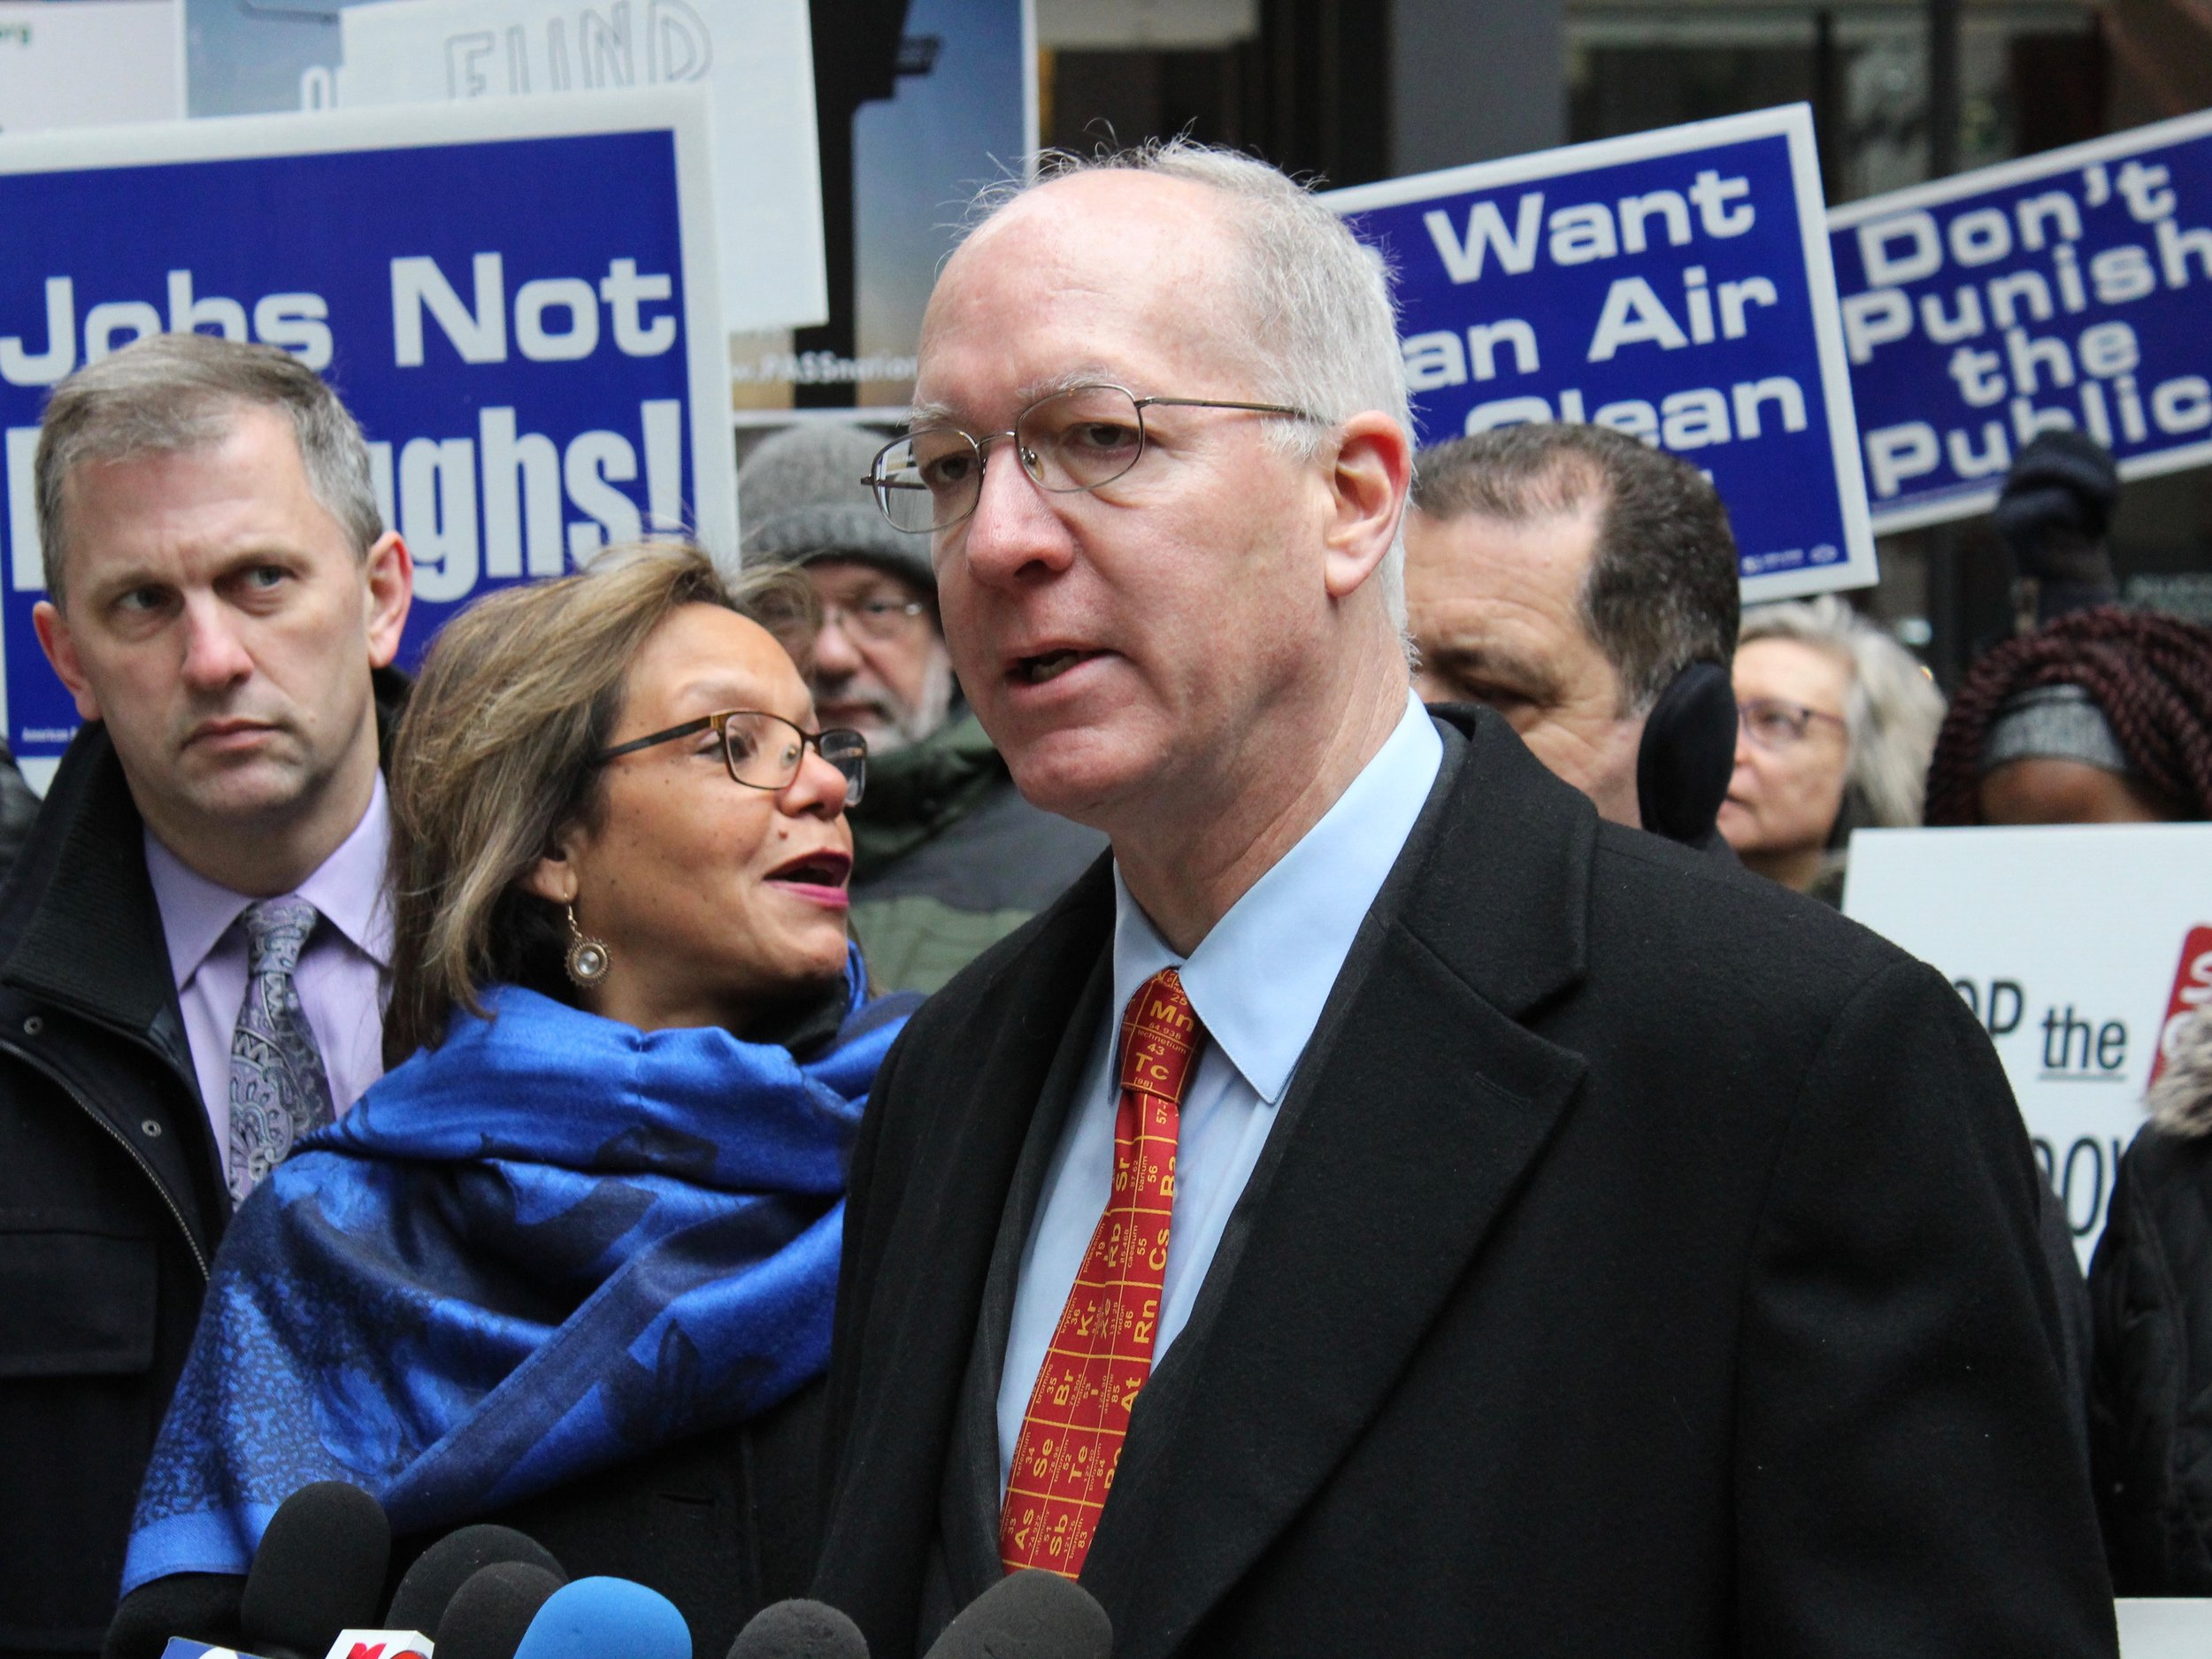 """The people of Illinois and our nation deserve a government that will use the most effective tools and procedures to protect their health."" - U.S. Rep. Bill Foster (One Illinois/Ted Cox)"